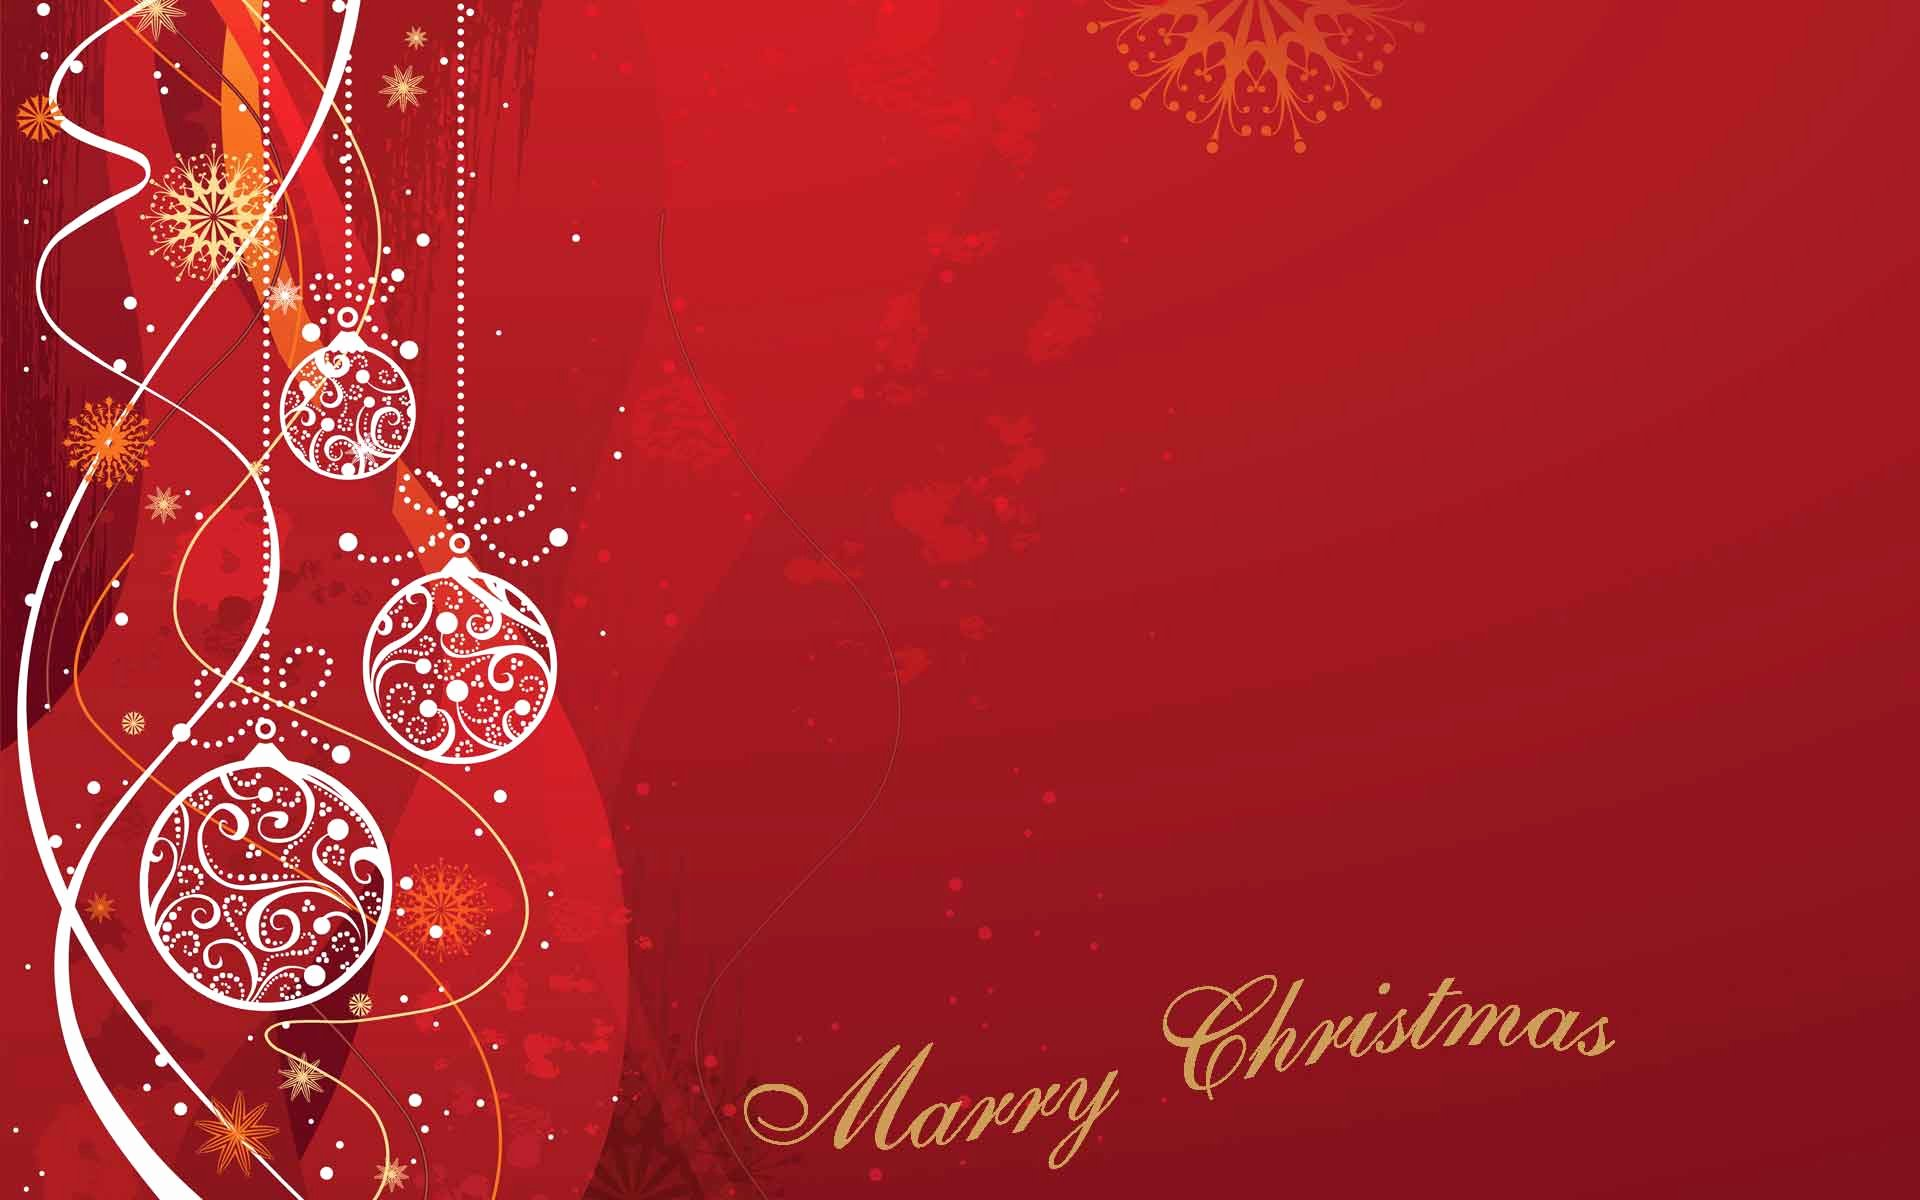 Email Template Background Image Inspirational Free Christmas Card Templates for Email – Fun for